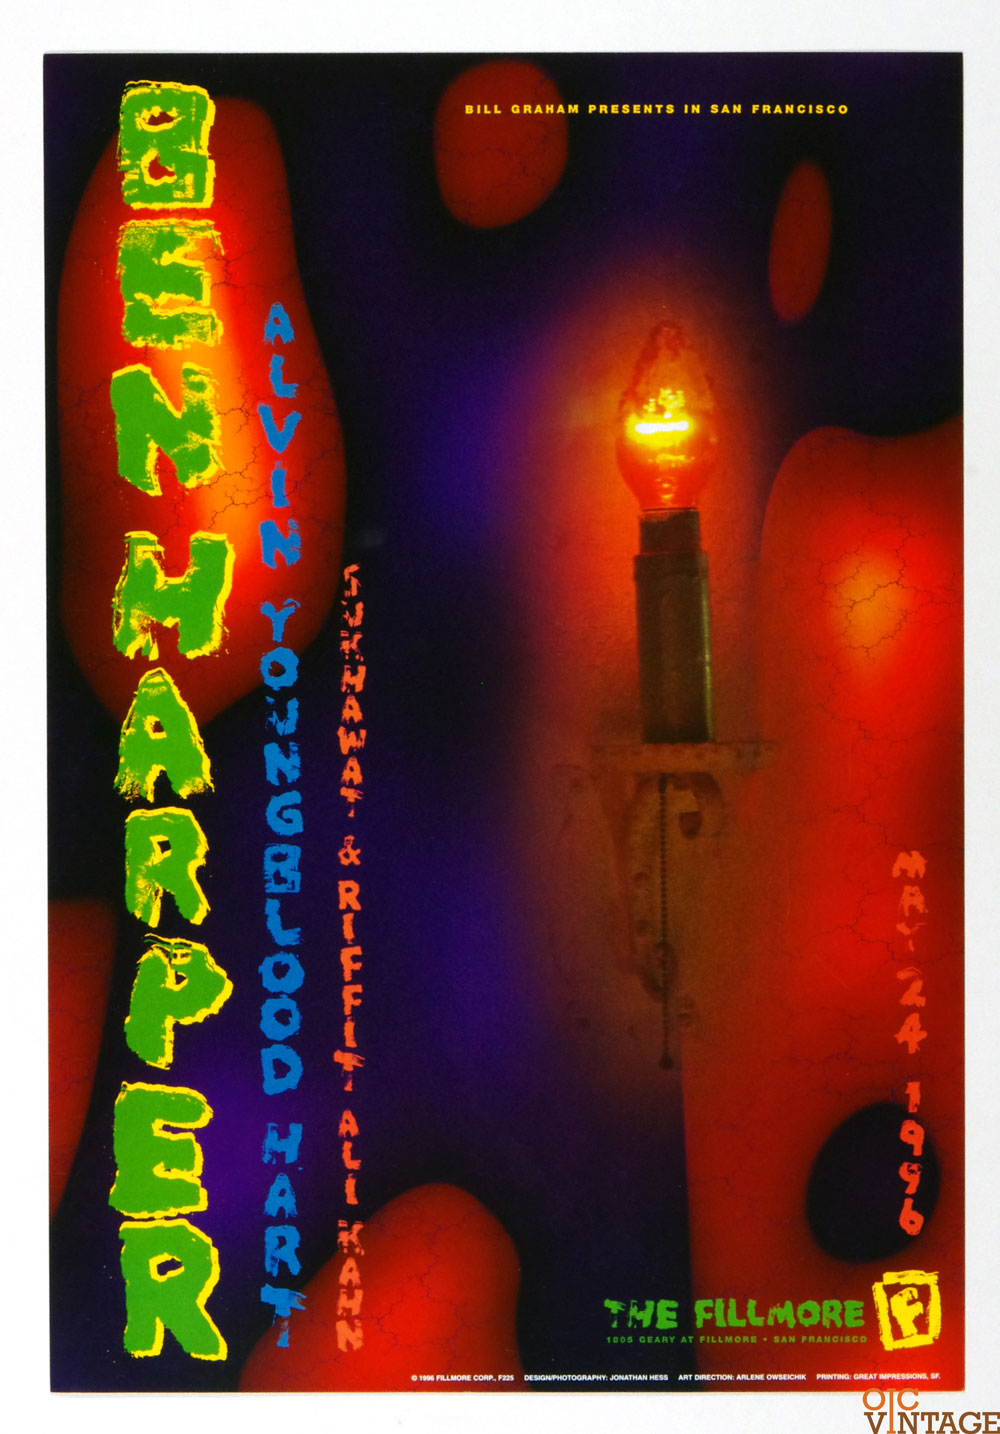 New Fillmore F225 Poster Ben Harper Alvin Youngblood Hart 1996 May 24